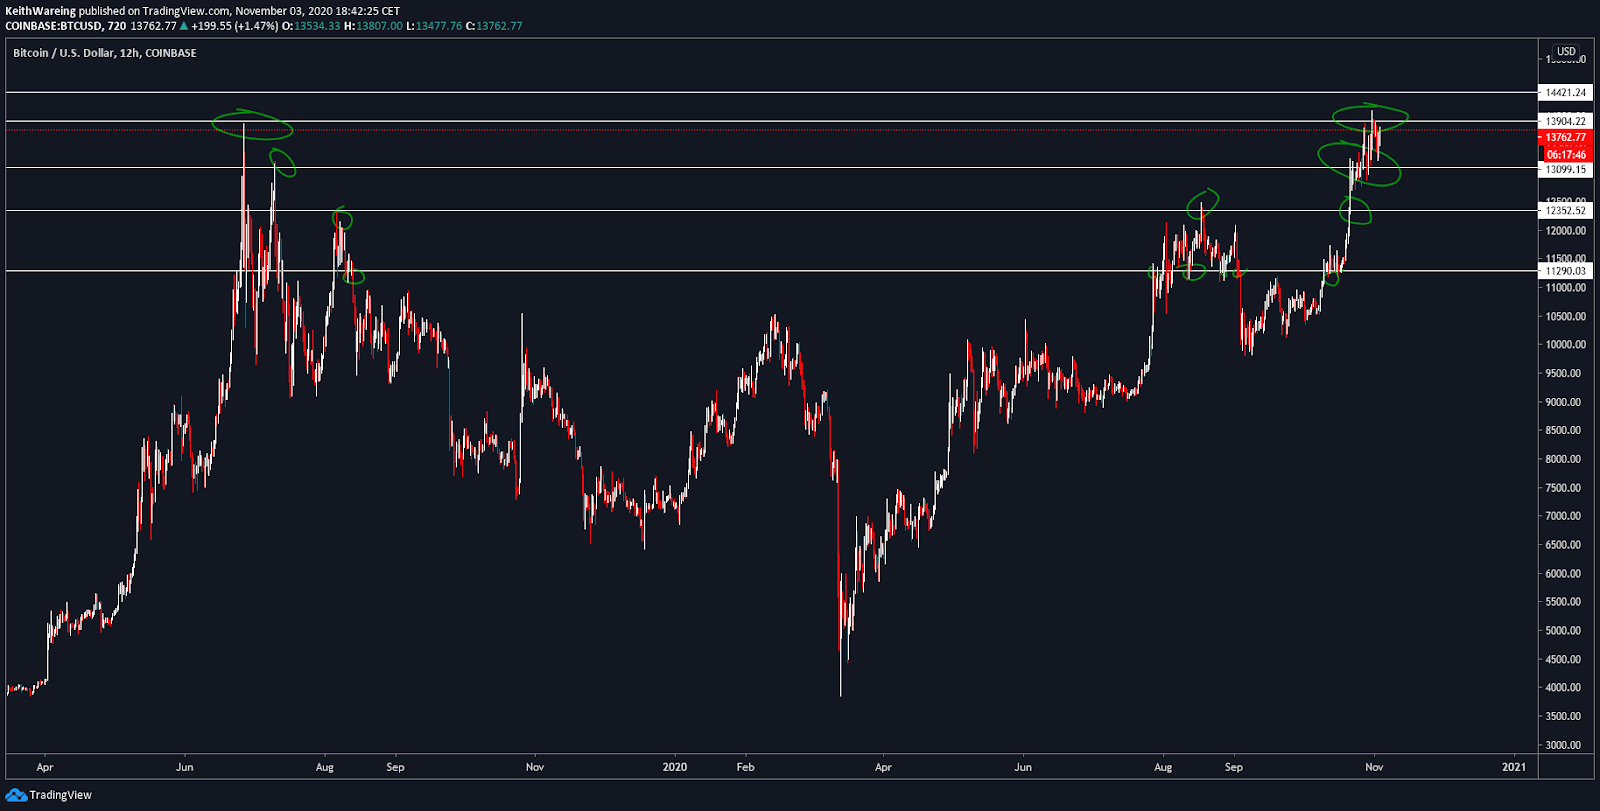 Can Bitcoin hit $17K next? Watch these 3 key BTC price levels